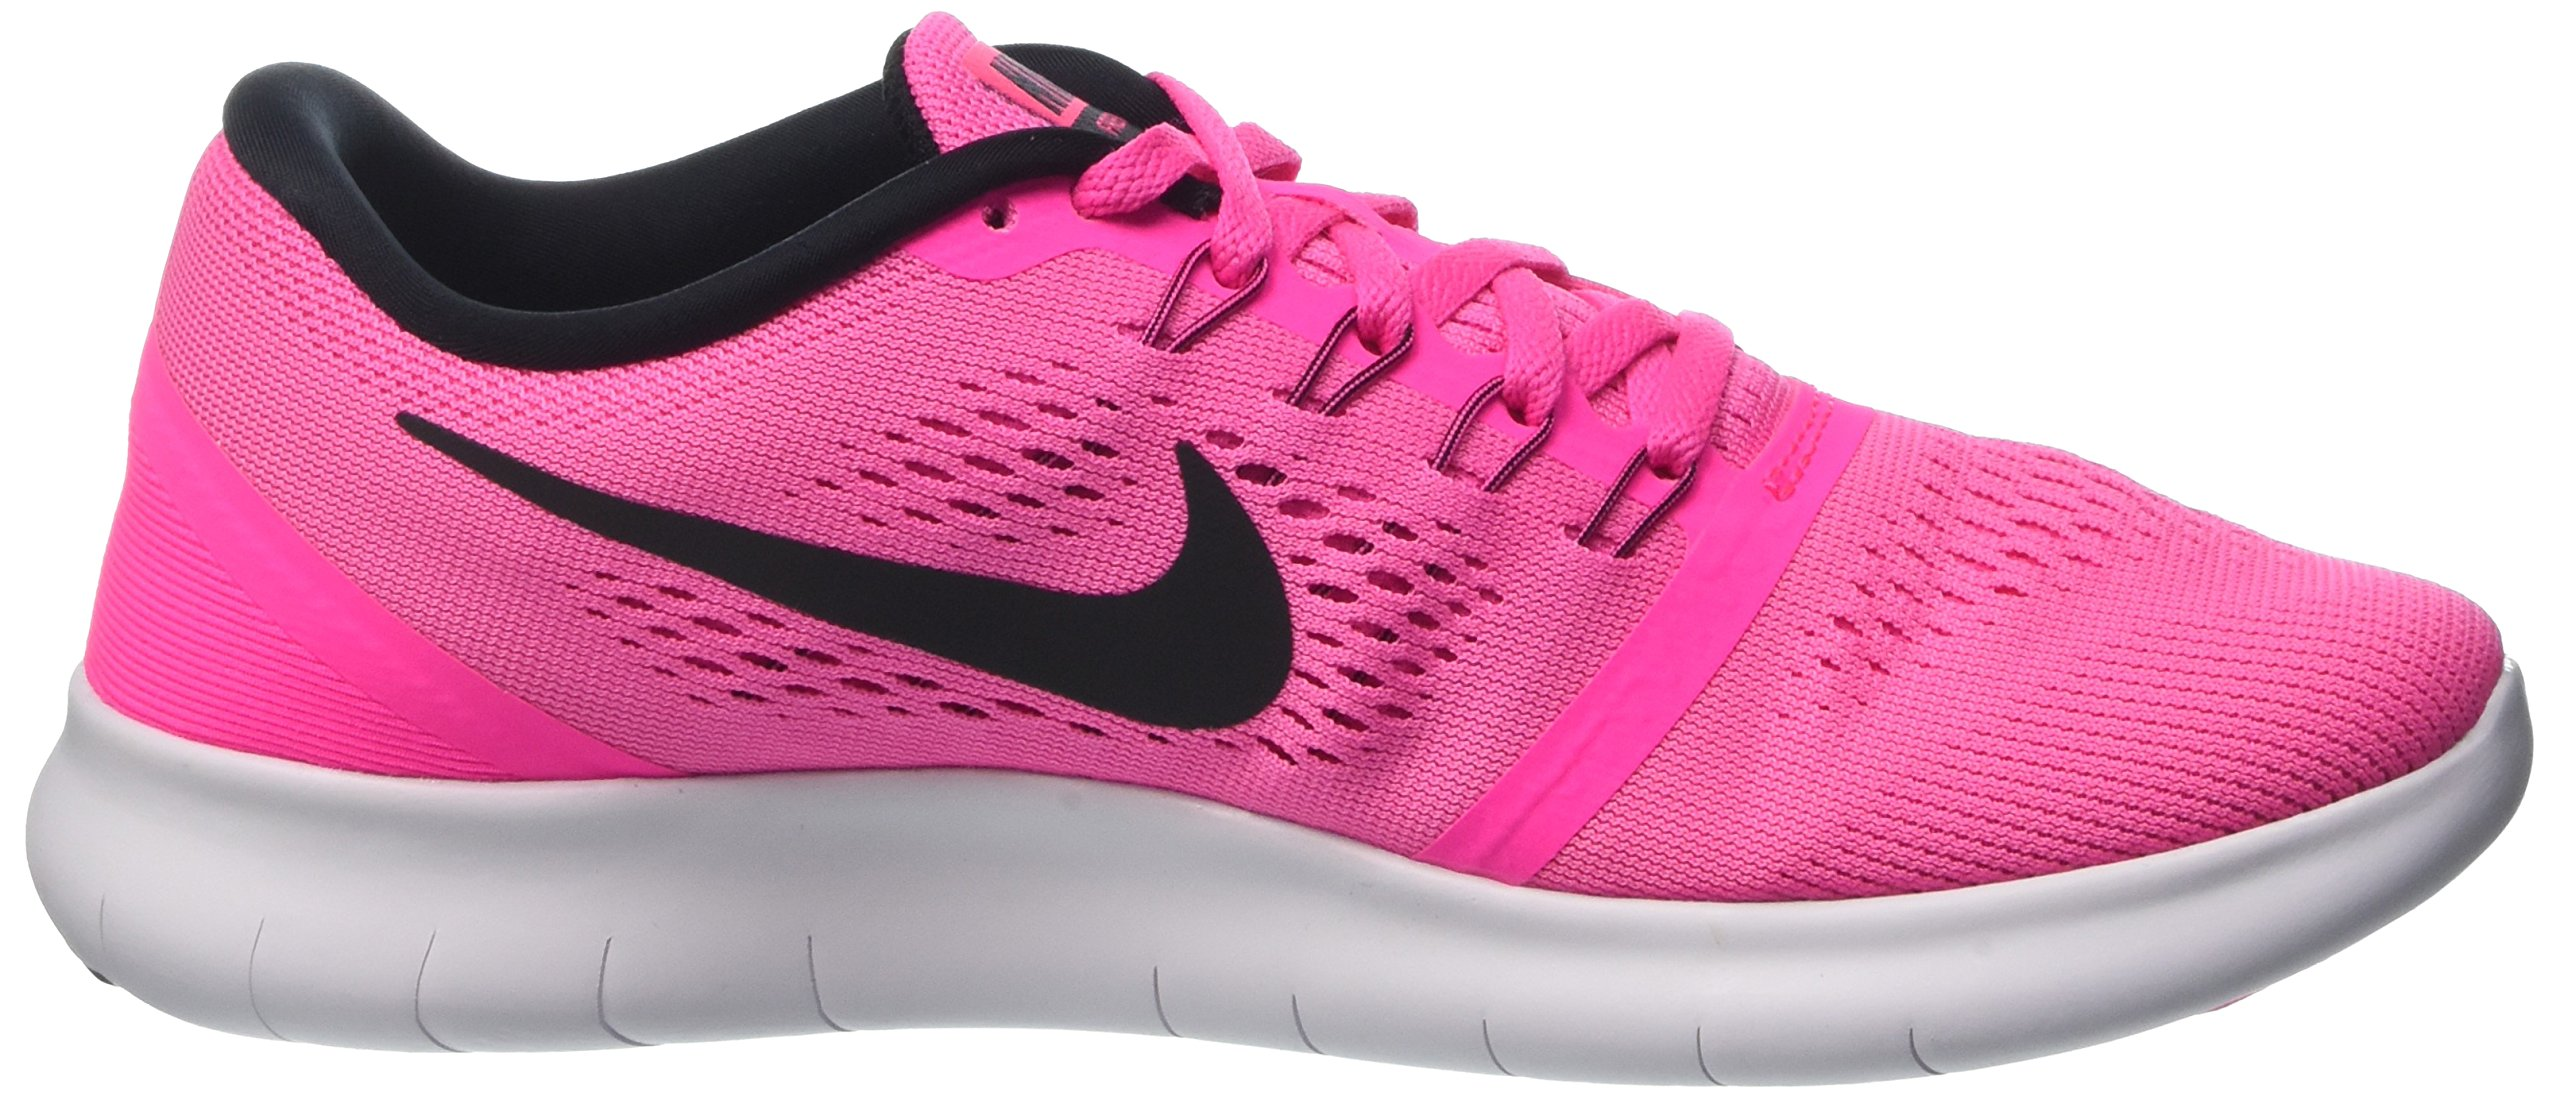 Nike Womens Free RN Running Shoes Pink Blast/Fire Pink/White/Black 5 B(M) US by Nike (Image #5)